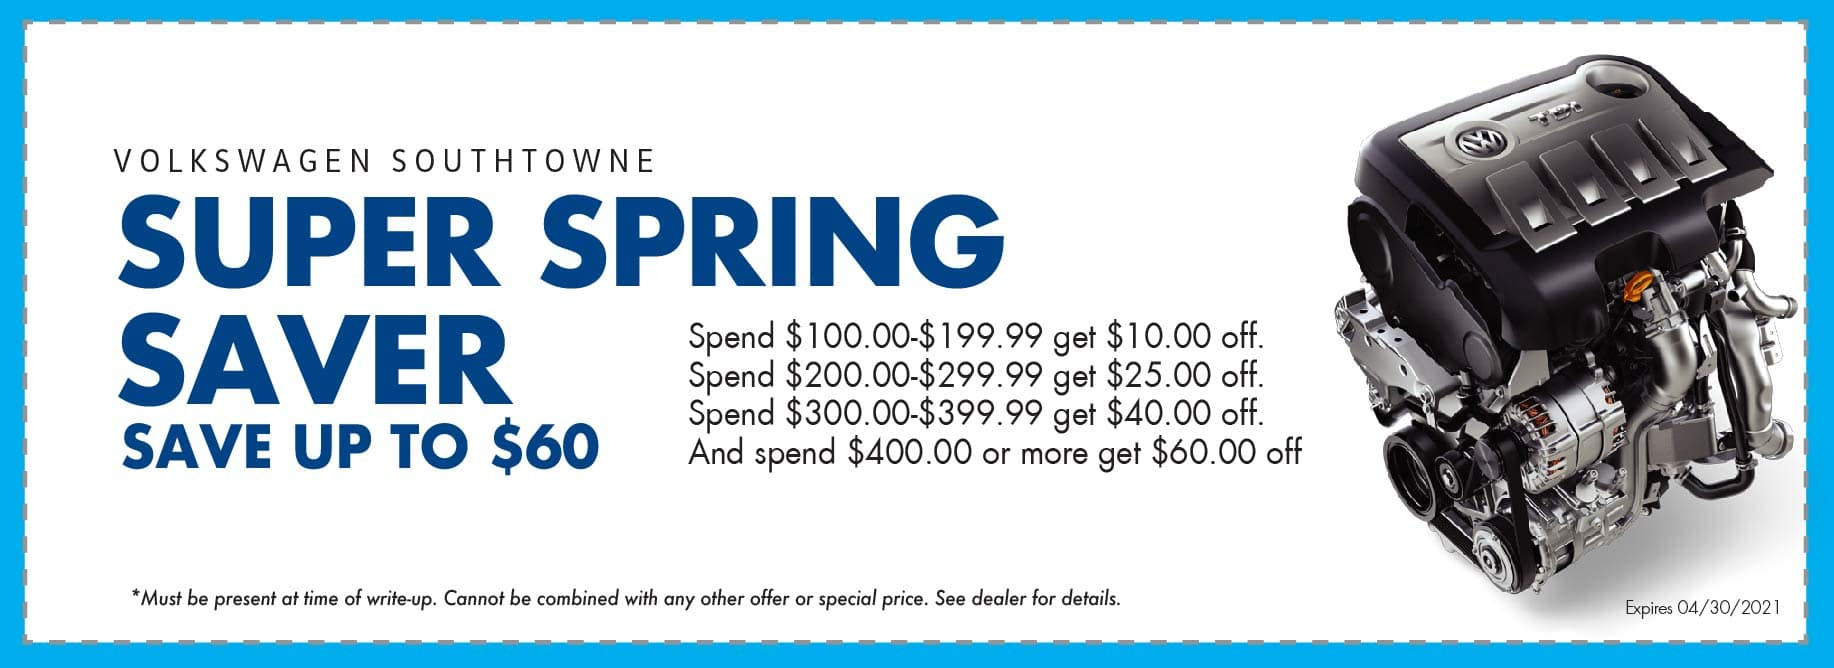 Spring Super Saver. Spend and Save up to $60 at Volkswagen SouthTowne.